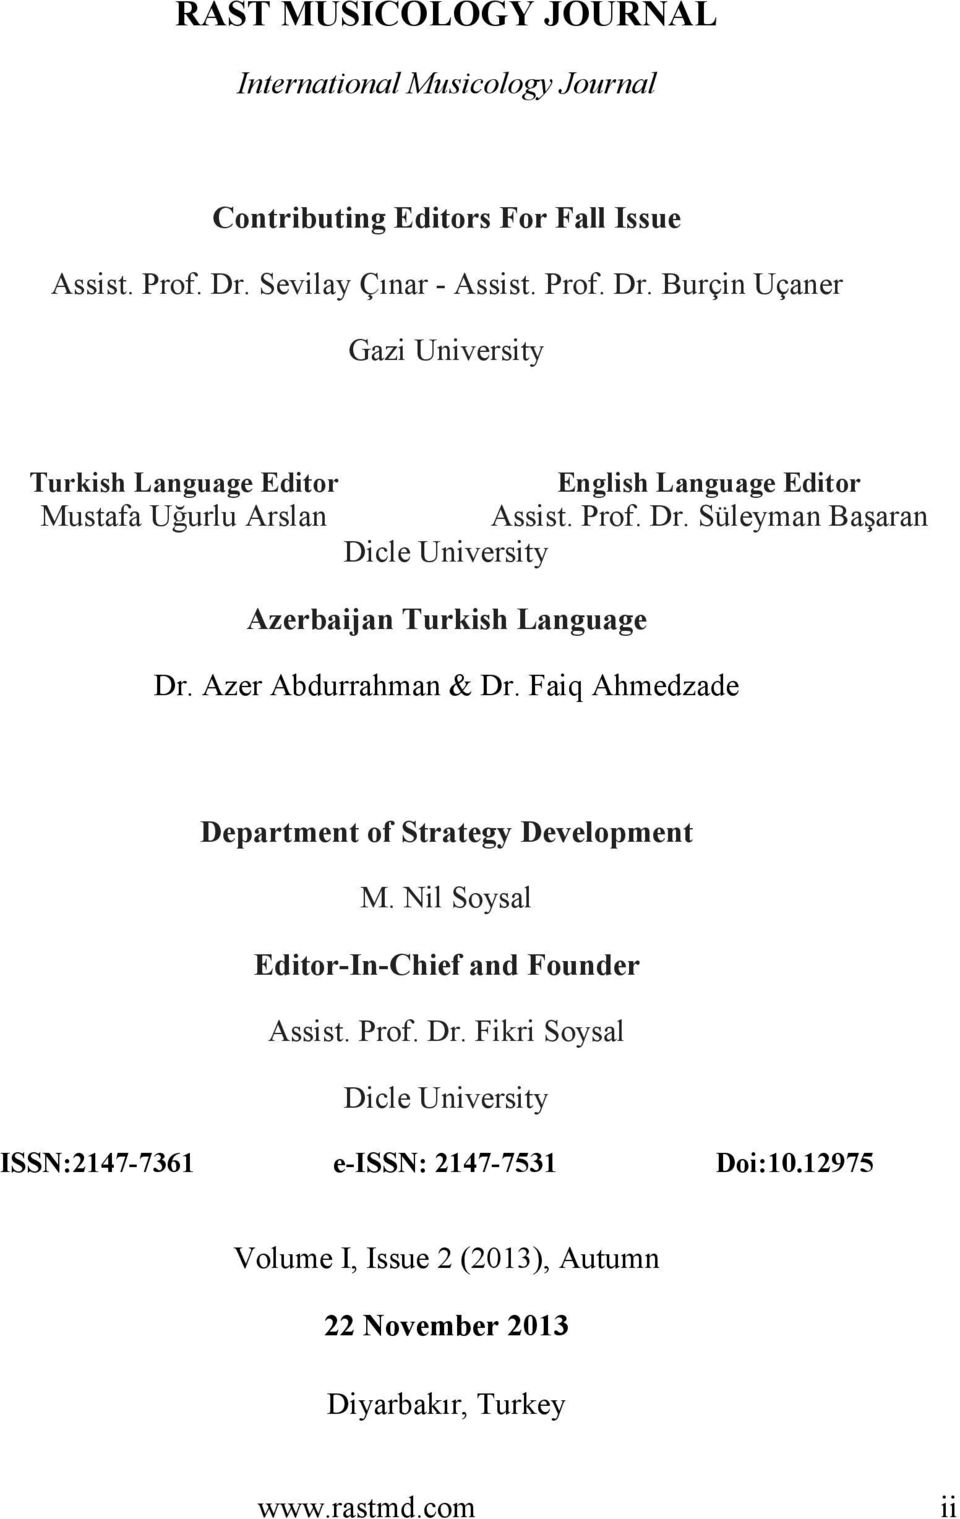 Azer Abdurrahman & Dr. Faiq Ahmedzade Department of Strategy Development M. Nil Soysal Editor-In-Chief and Founder Assist. Prof. Dr. Fikri Soysal Dicle University ISSN:2147-7361 e-issn: 2147-7531 Doi:10.